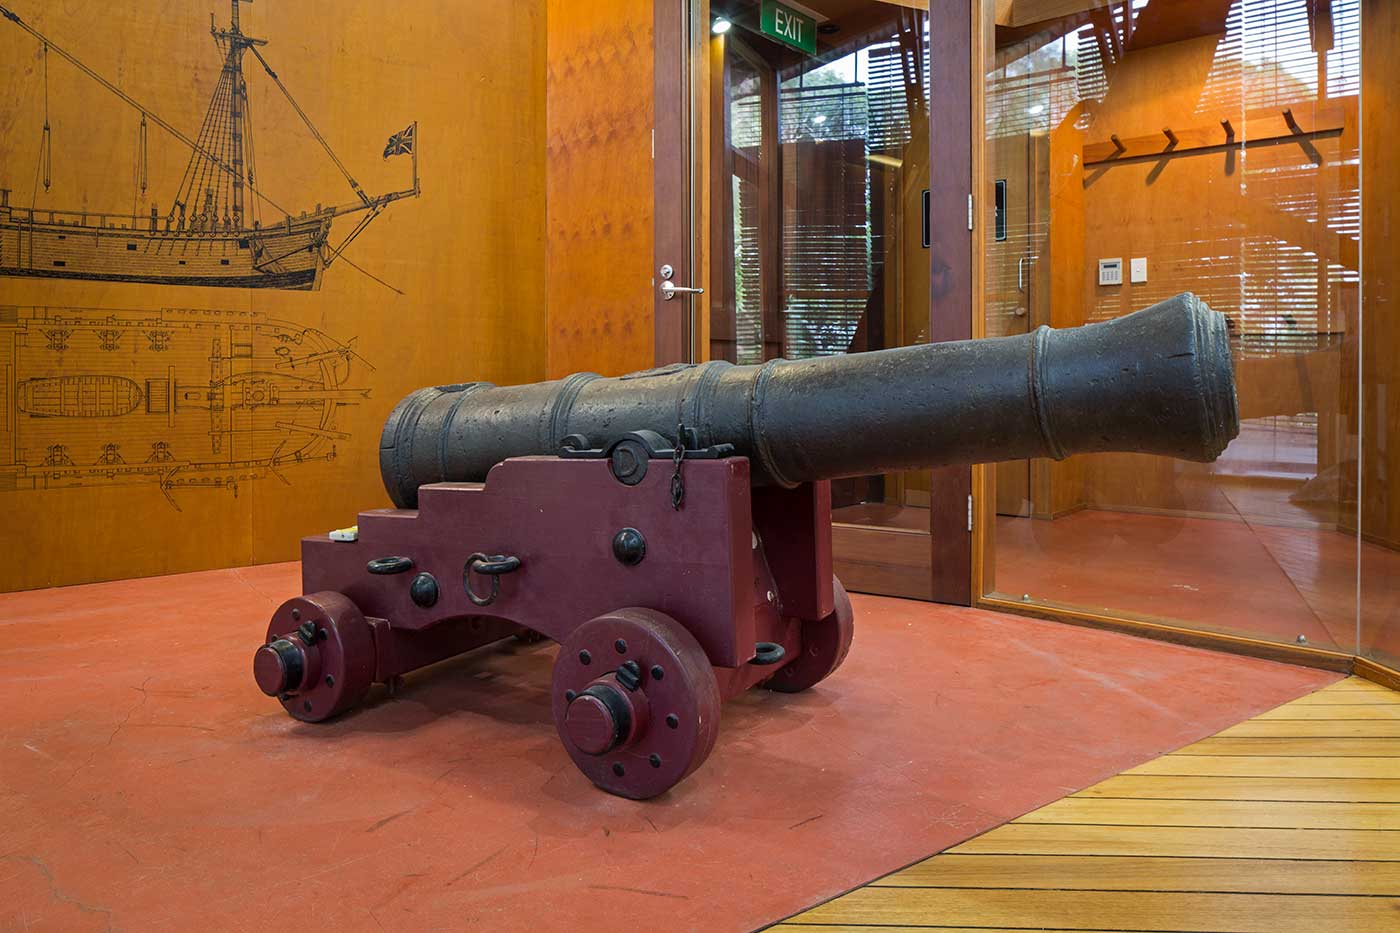 A large cannon mounted on a timber base, on display in a museum.   - click to view larger image